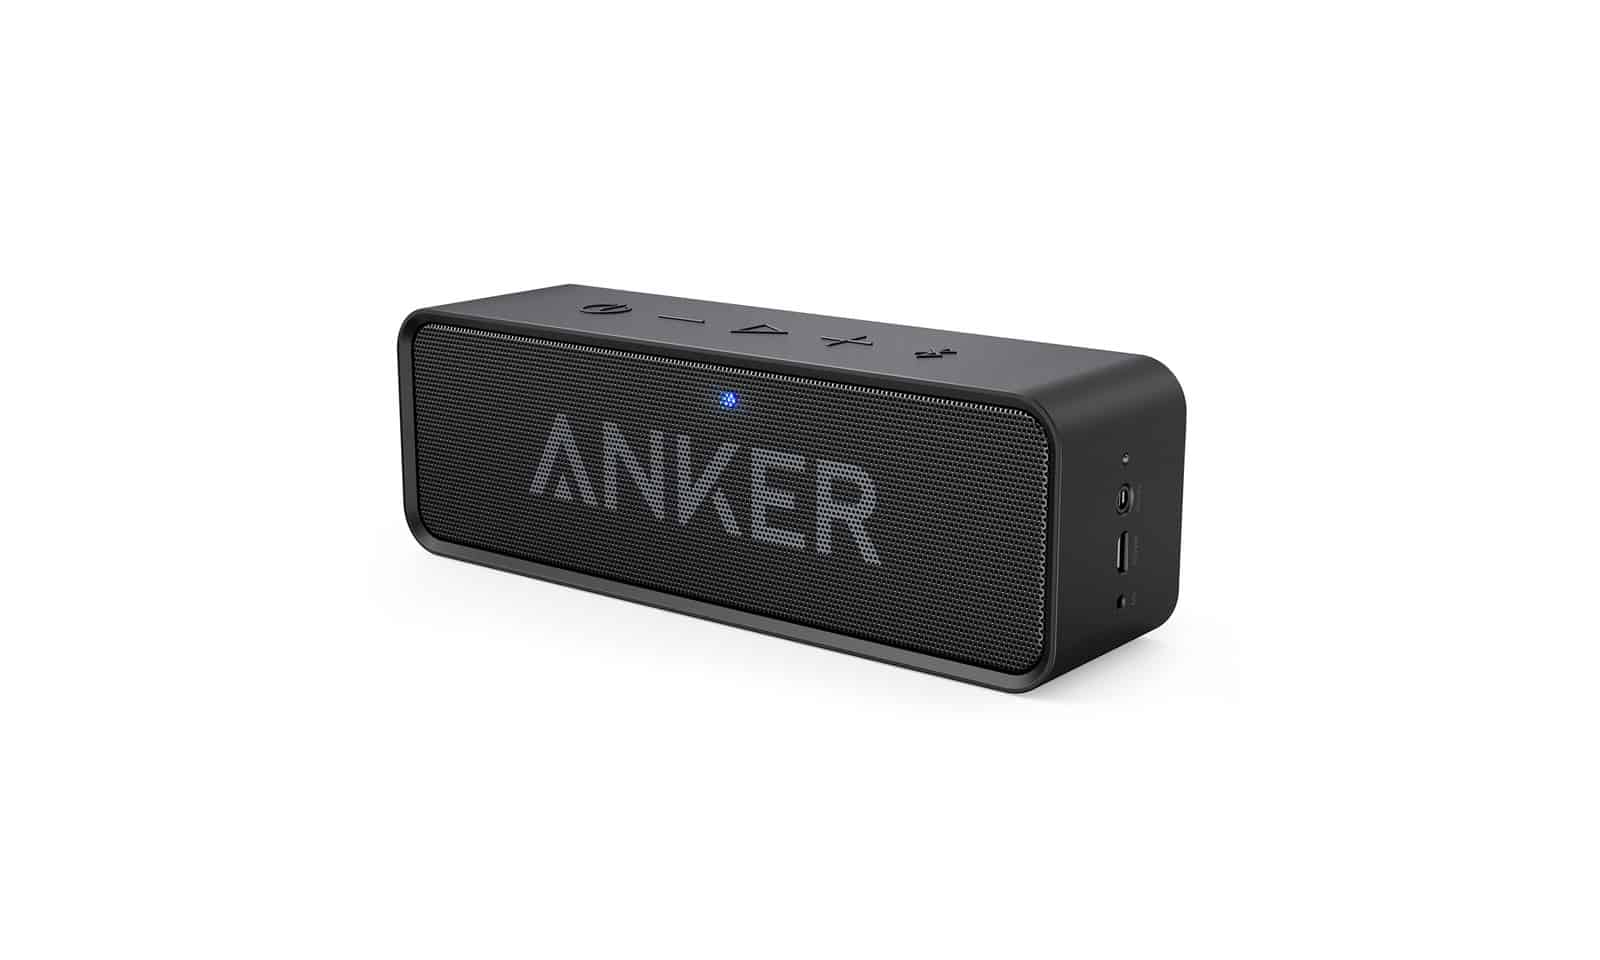 Anker's utilitarian unit is a low-cost gem.